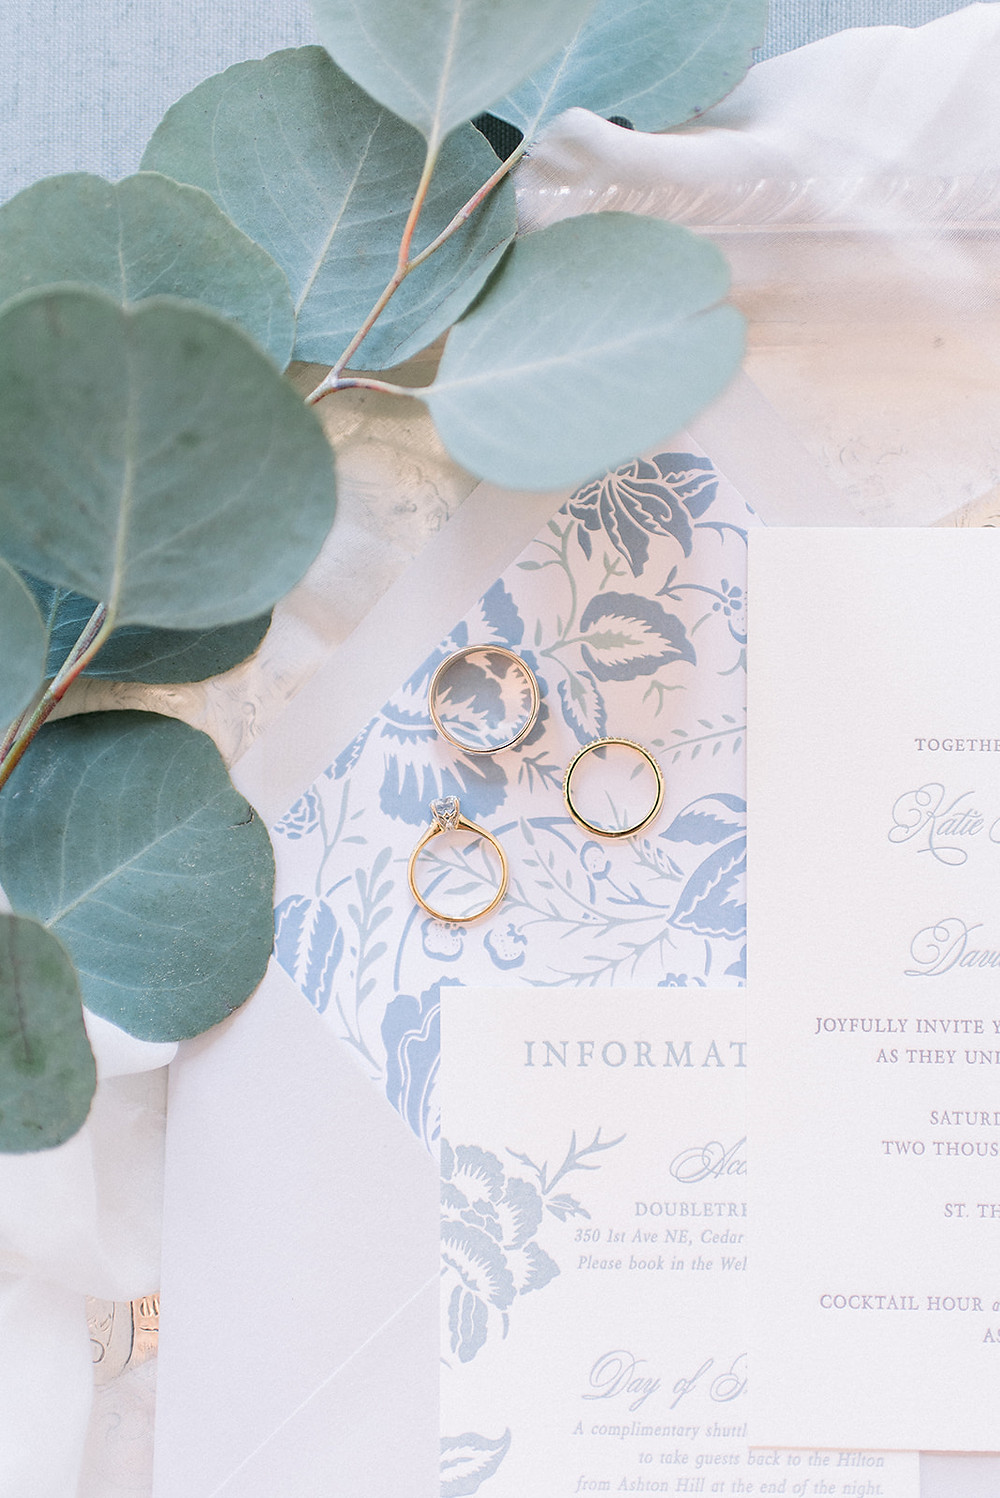 Detail of wedding rings on blue and white invitation with eucalyptus